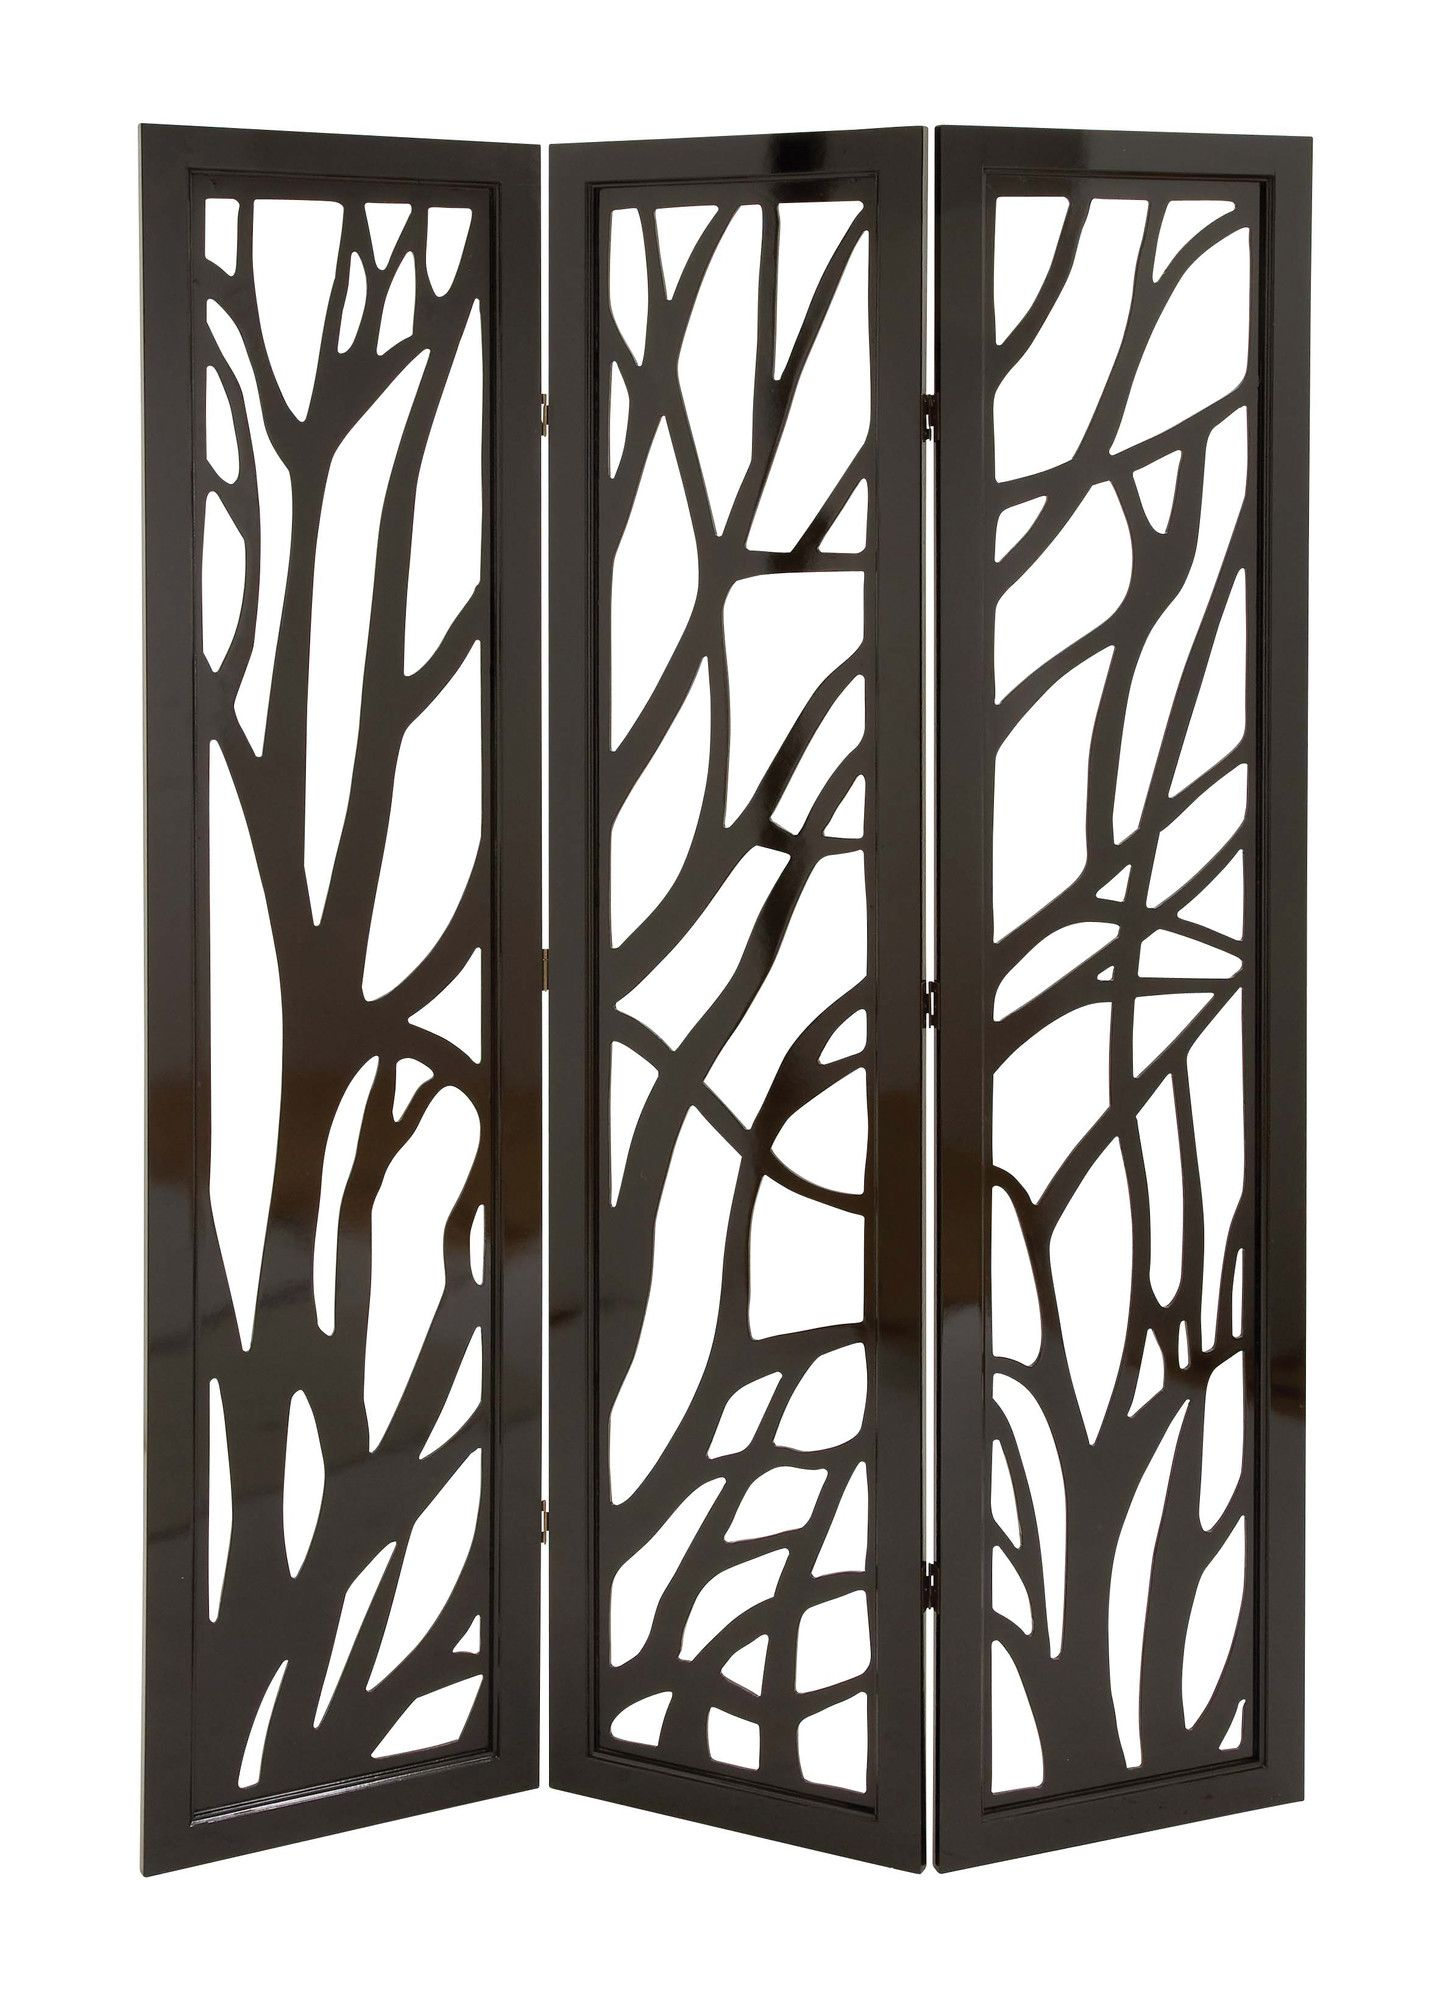 Woodland Imports 72 X 48 3 Panel Room Divider Reviews Wayfair